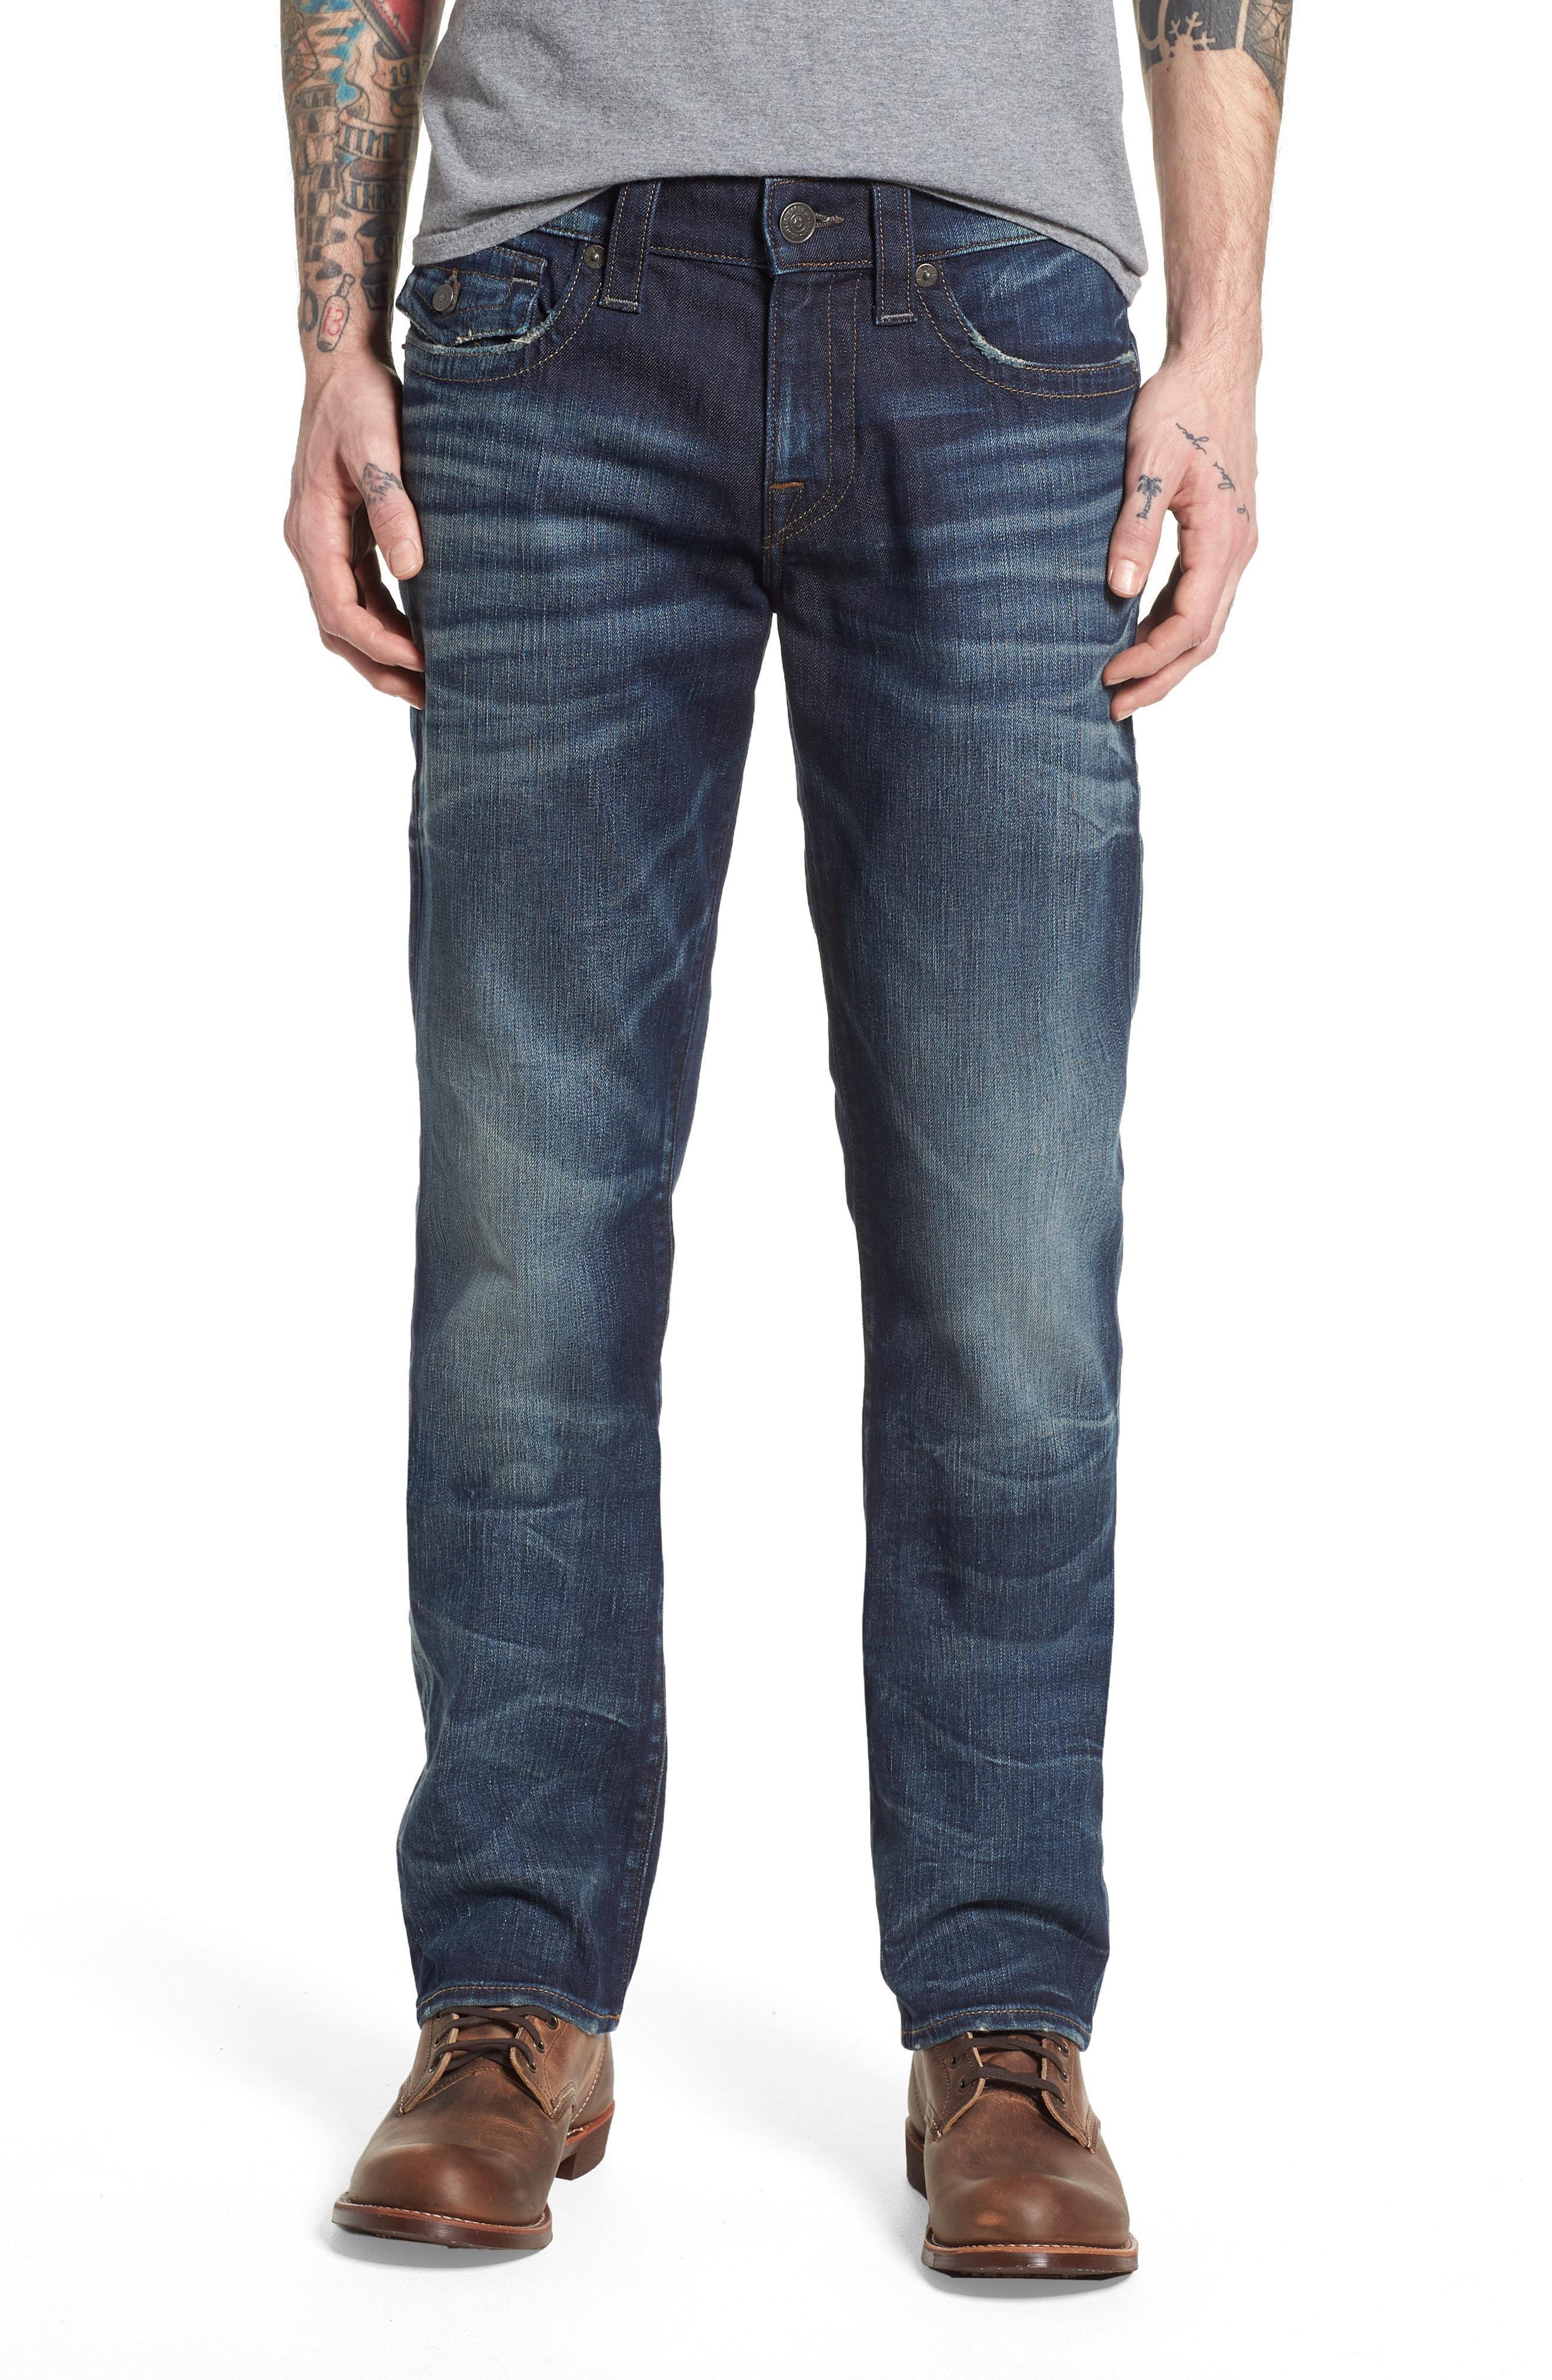 636ae15821371 True Religion Ricky Relaxed Fit Jeans in Blue for Men - Lyst